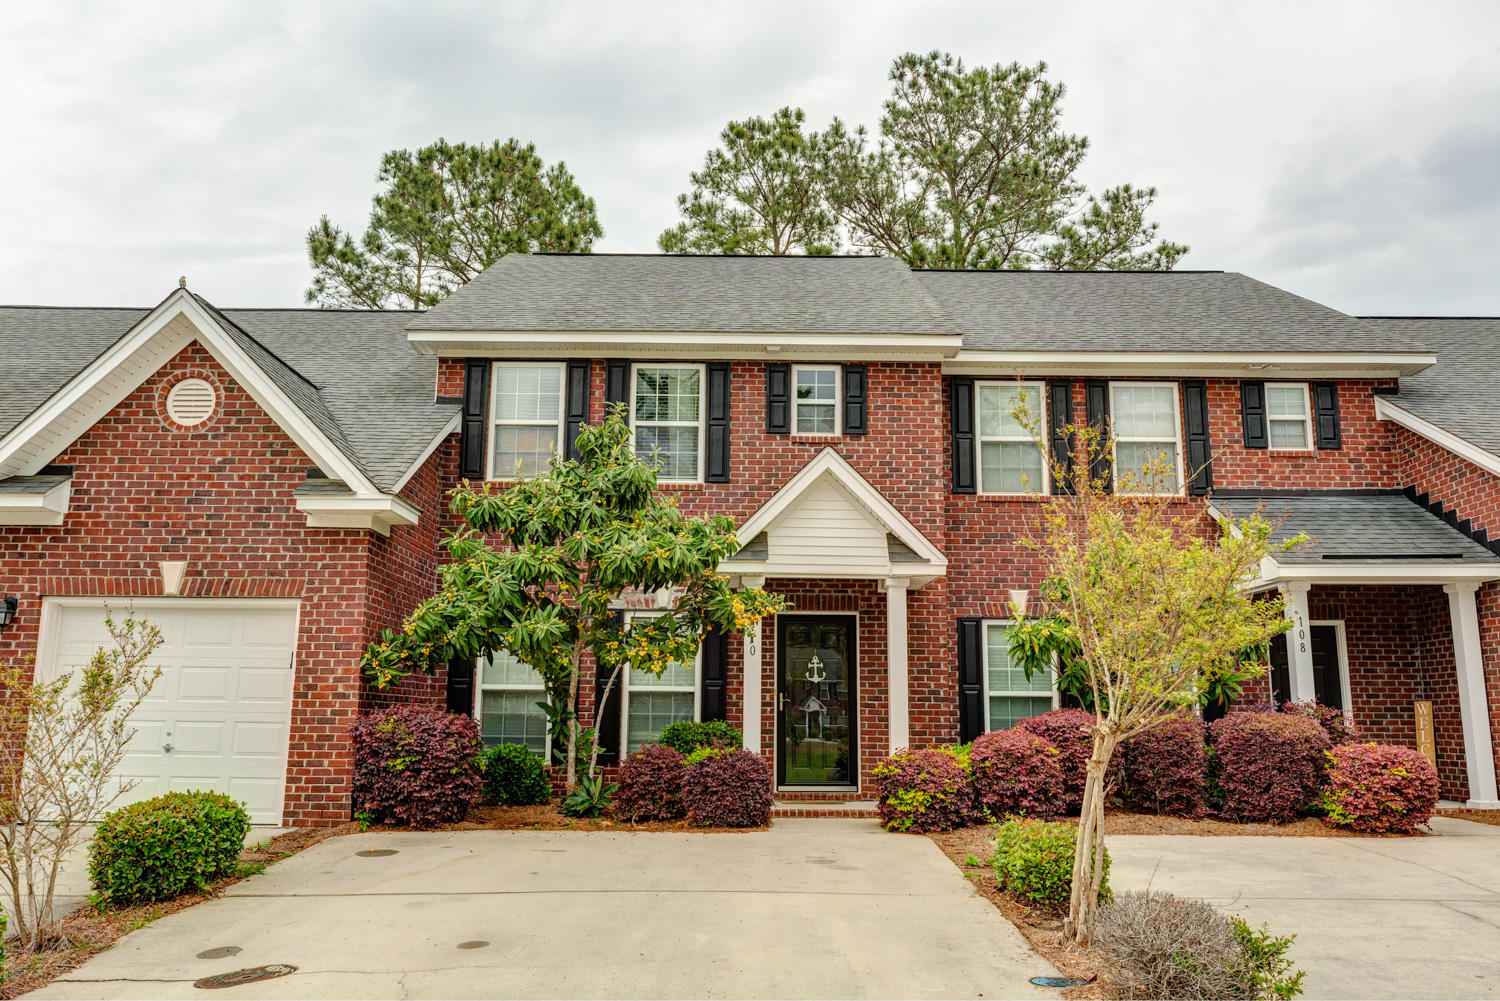 Limehouse Villas Homes For Sale - 110 Tuscany, Ladson, SC - 9